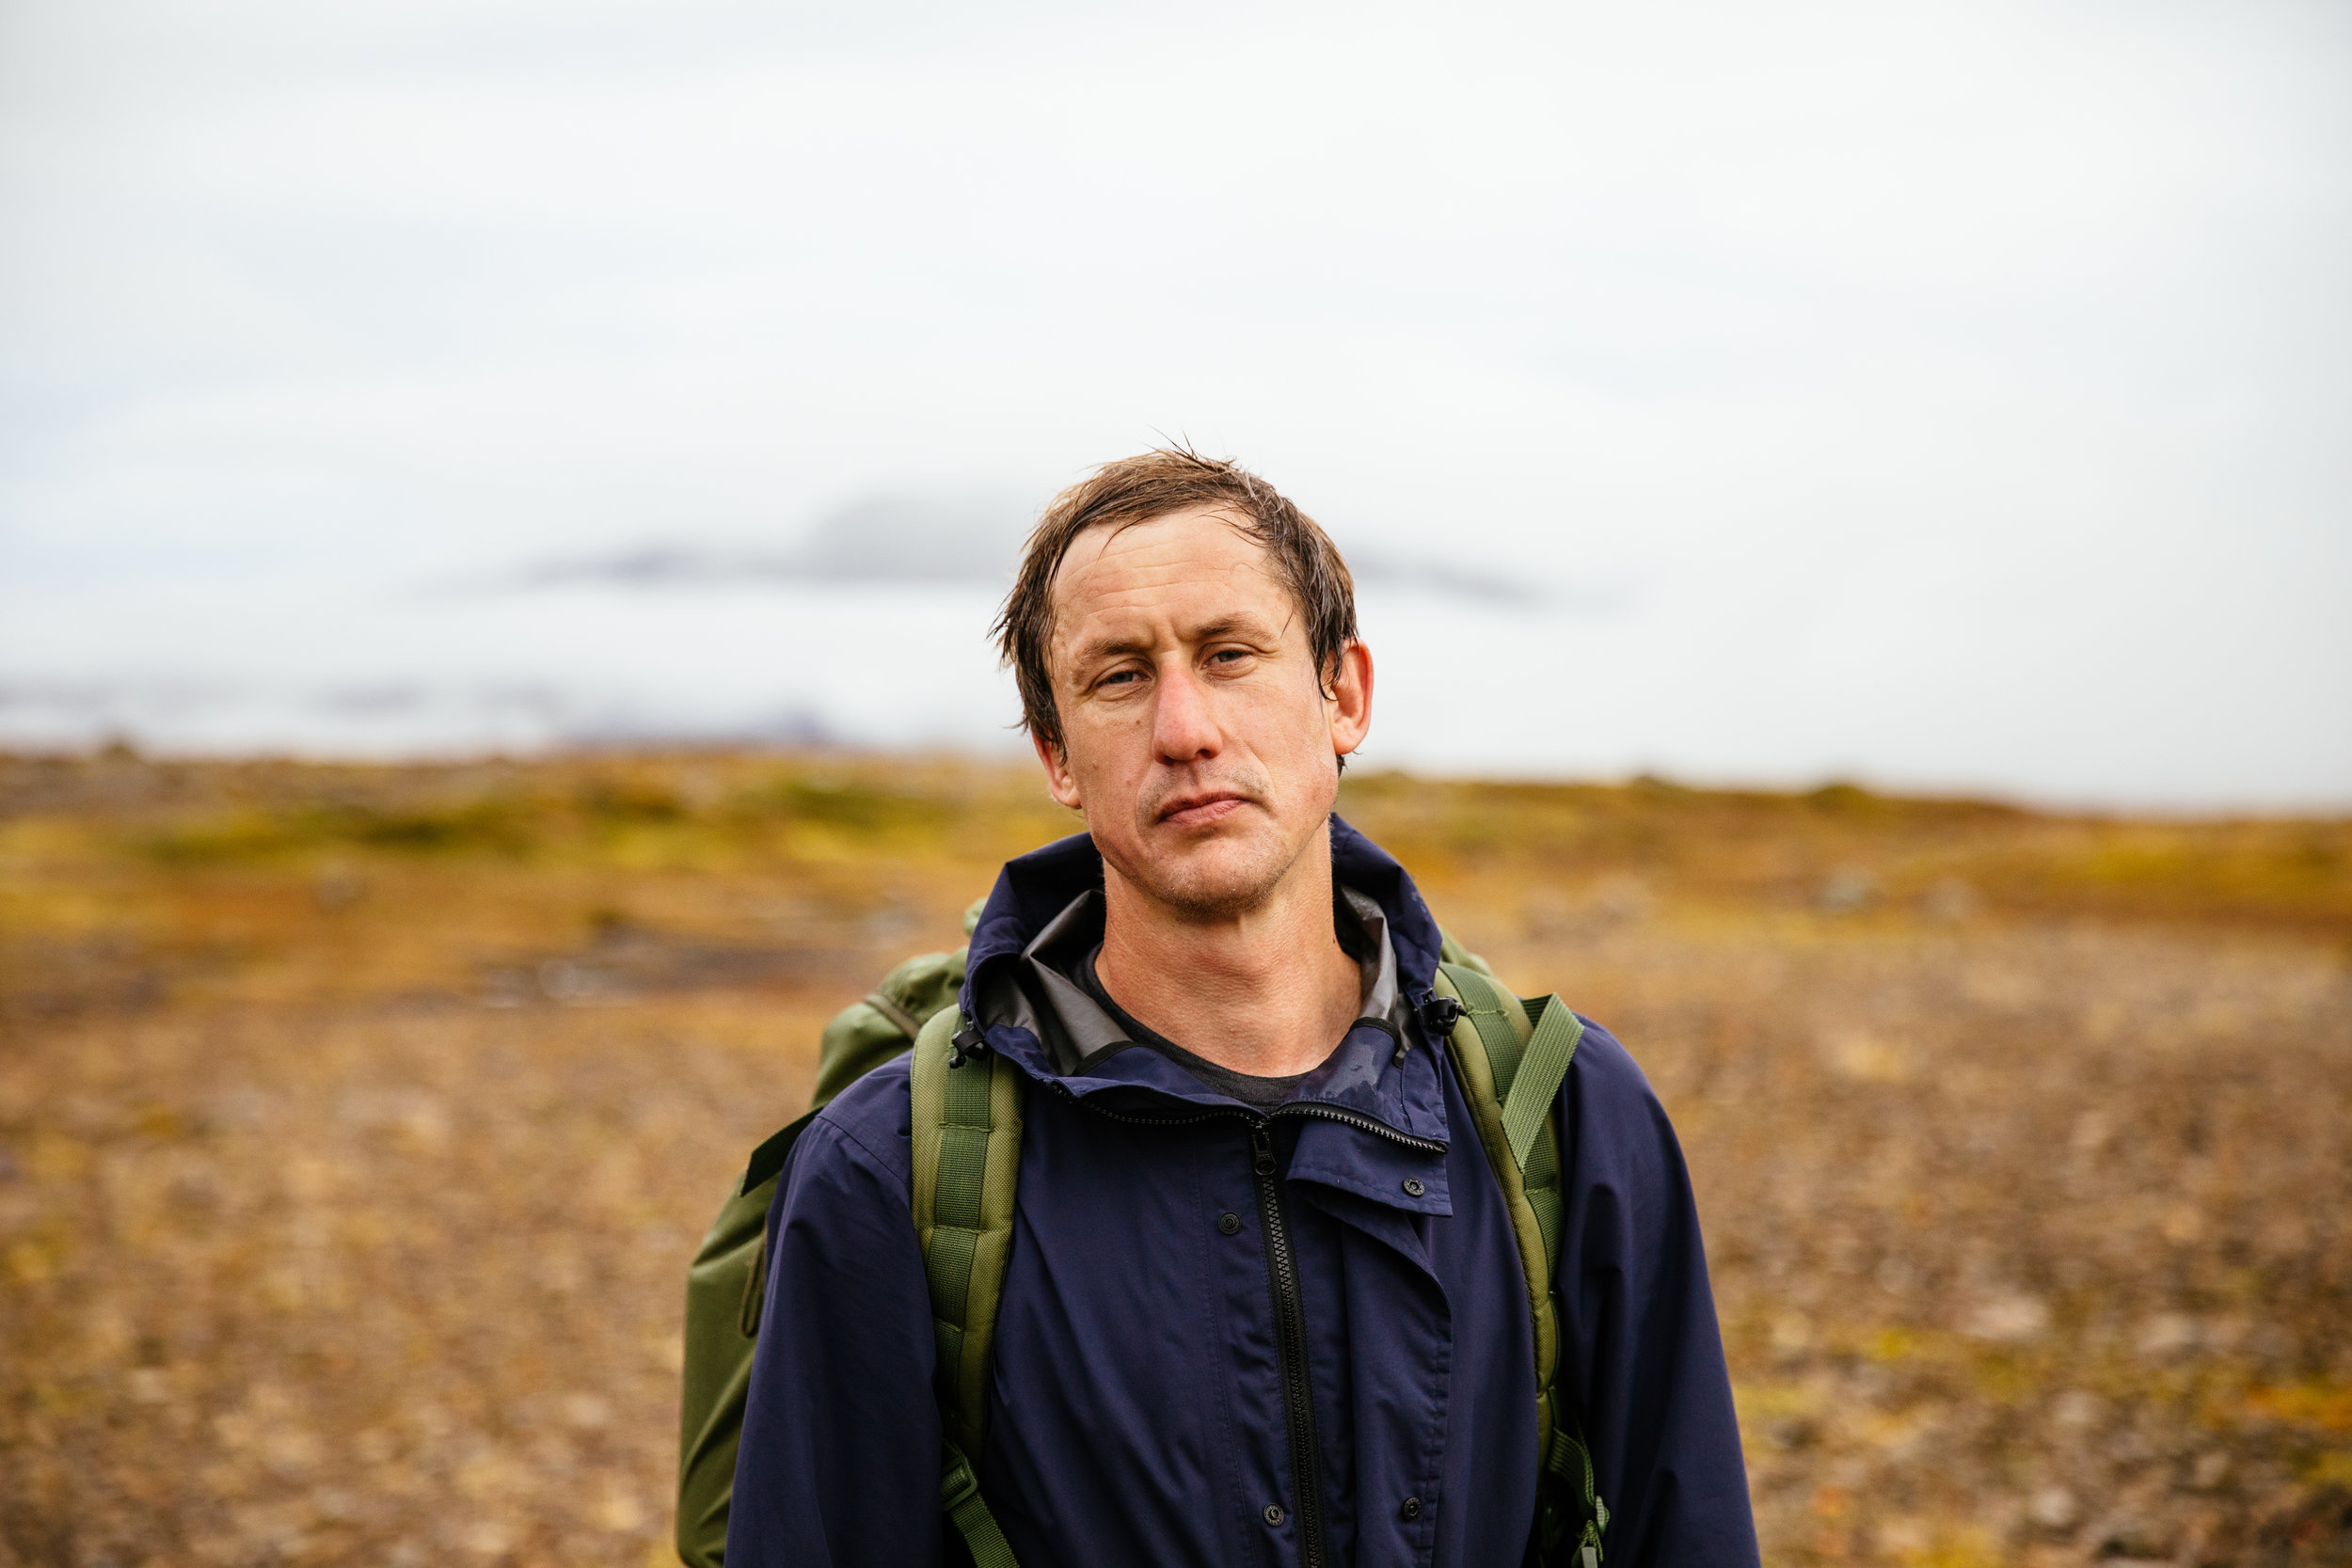 DAVID GRAY - Head of Creative, Finisterre